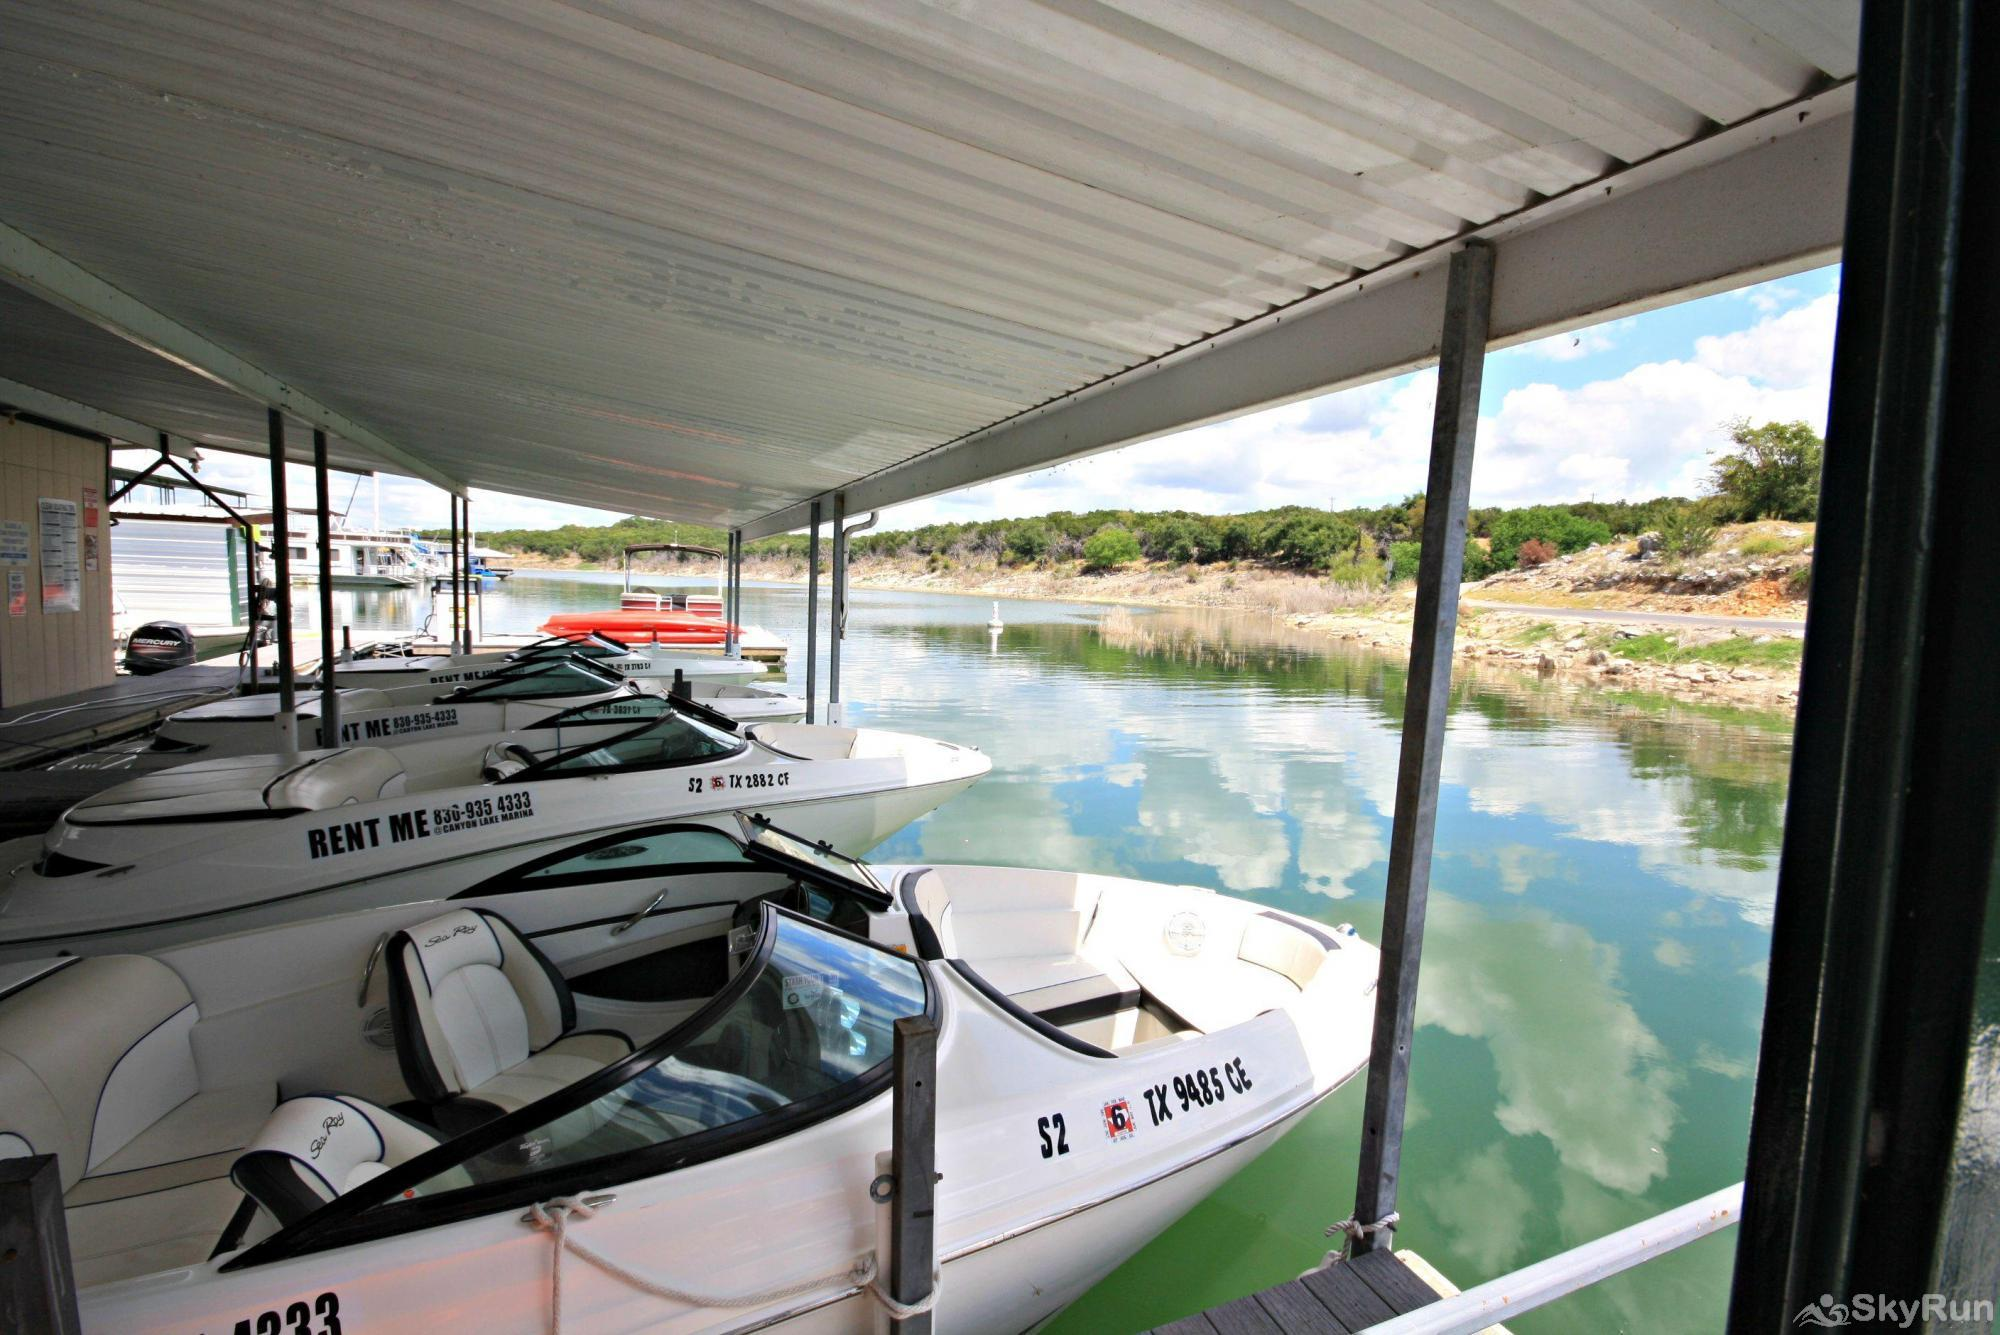 CASA DE SUENA Boat and Jet Ski Rentals at Canyon Lake Marina